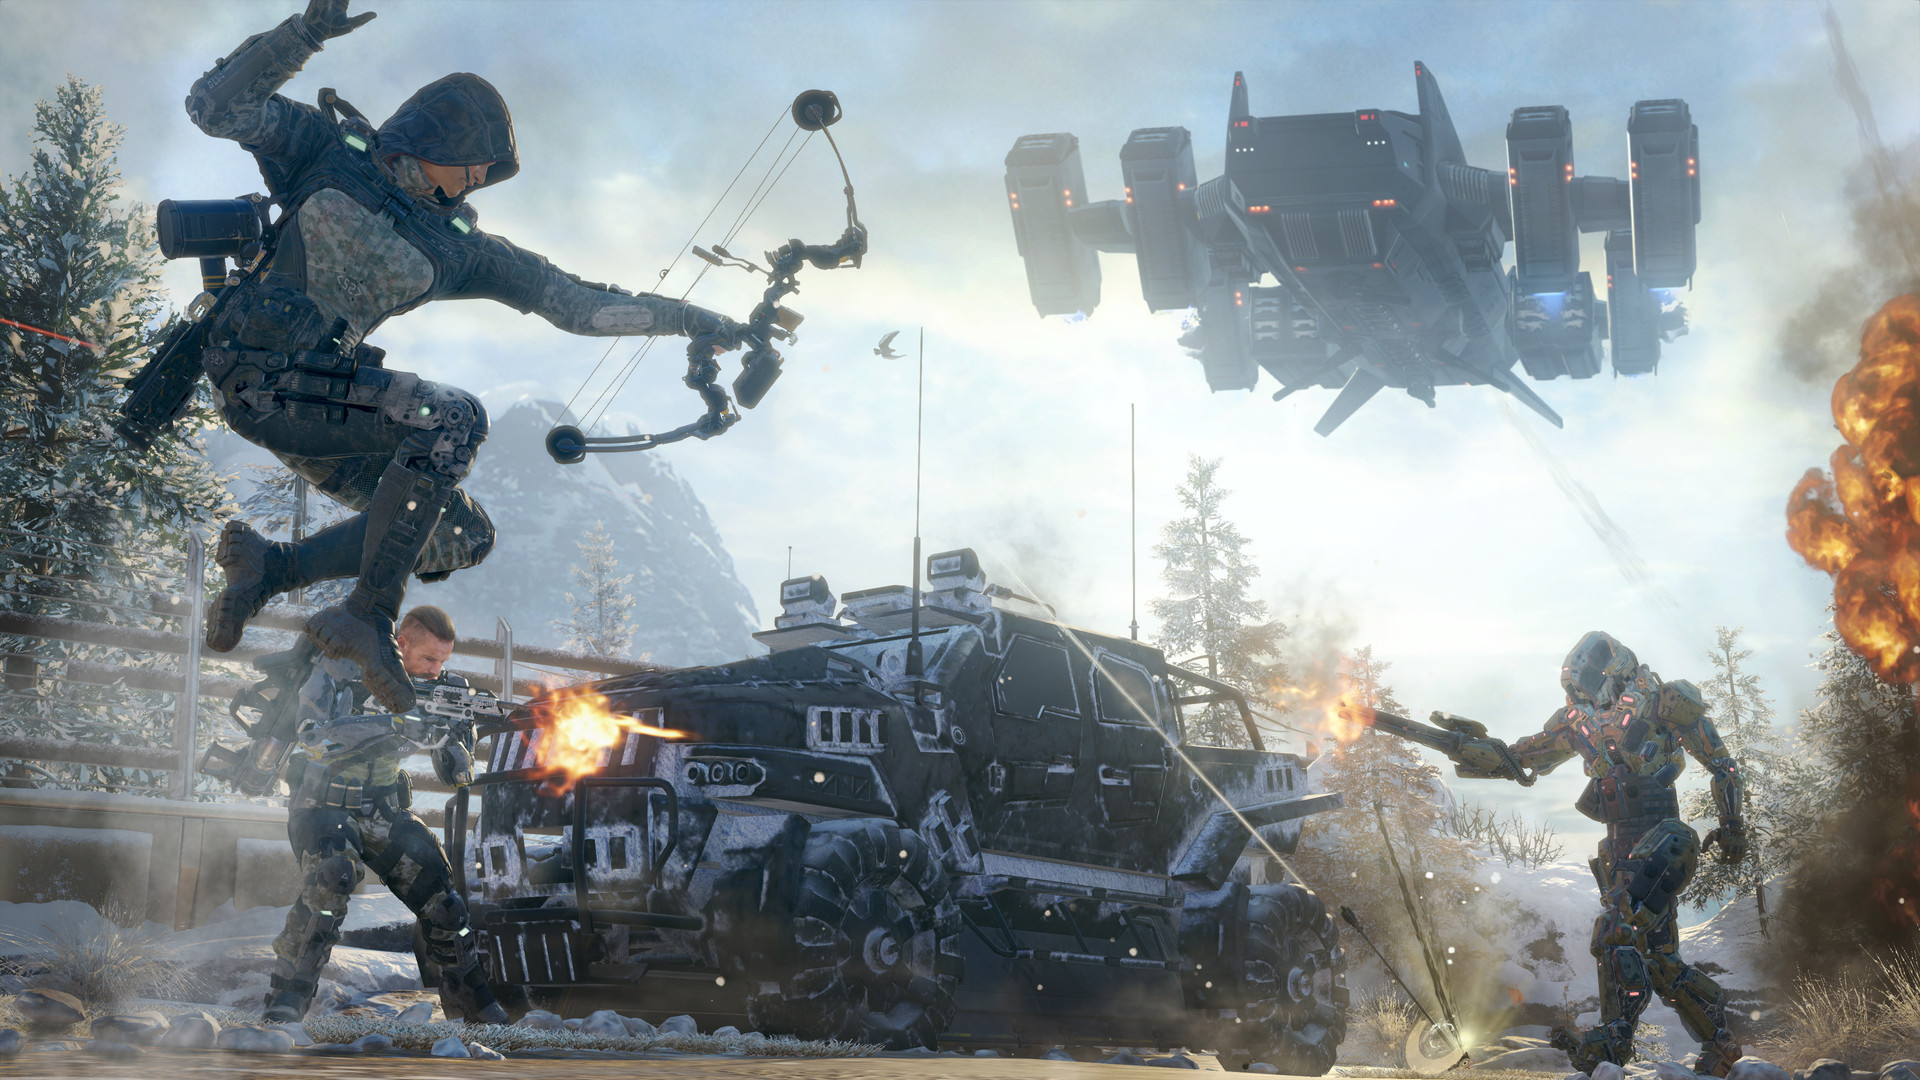 Call of Duty: Black Ops III image 1